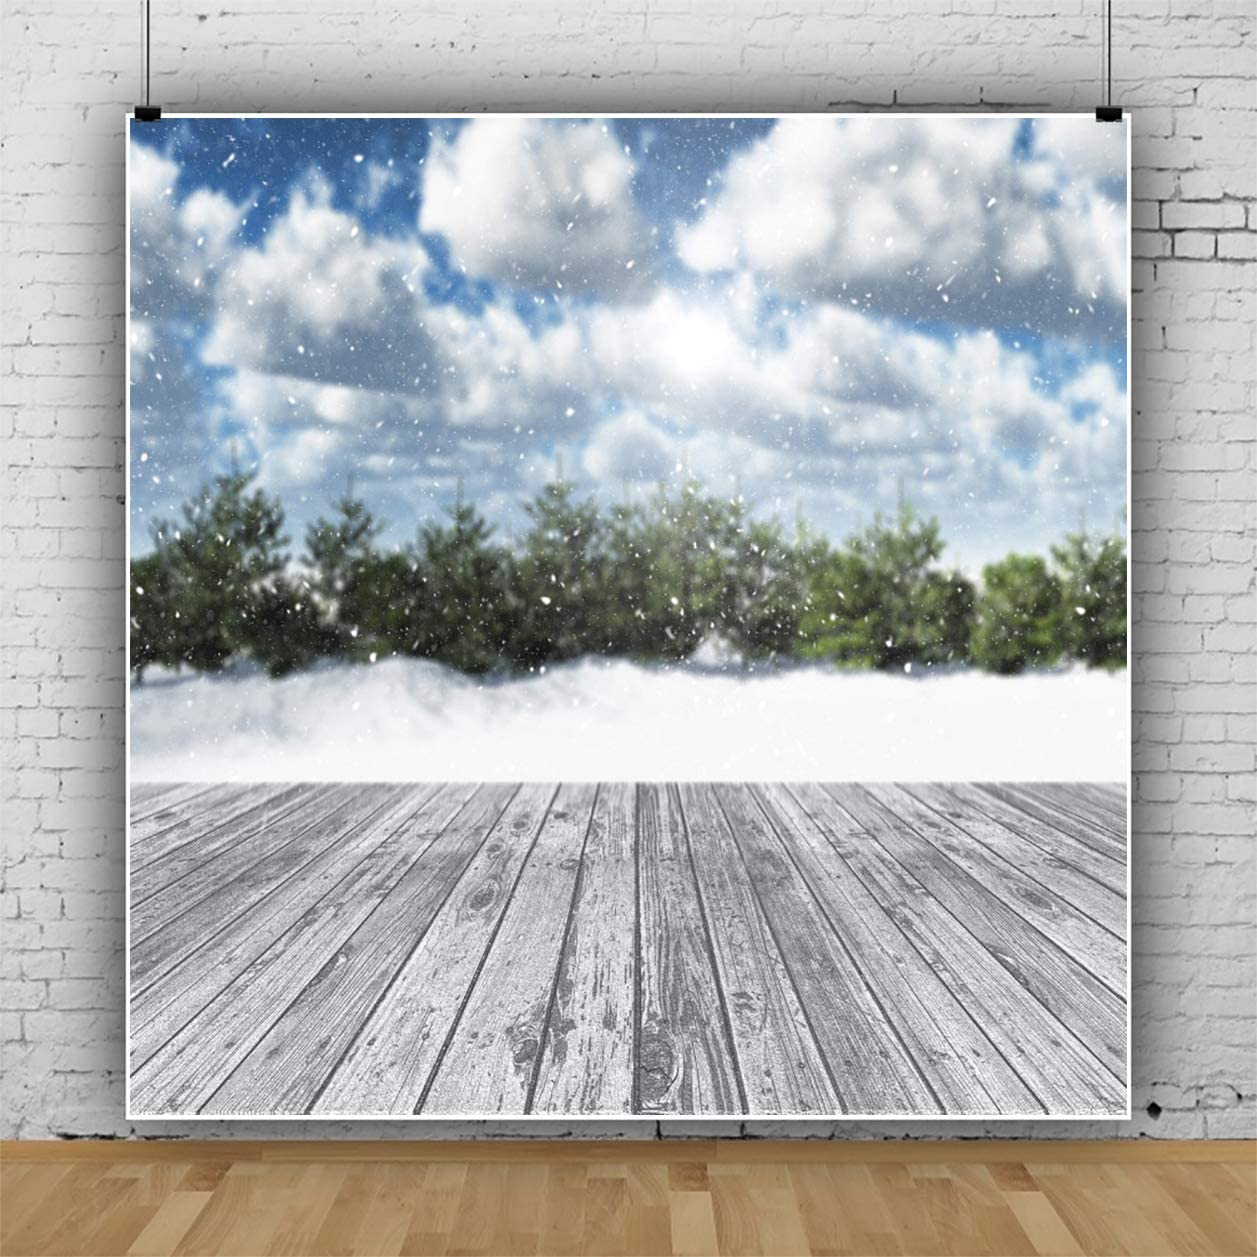 AOFOTO 5X5FT Winter Outdoor Snowing Forest Backdrop White Coulds Snow Xmas Party Decoration Wooden Floor Photography Background Blur Christmas Snowfield Fir Trees Photo Studio Props Poster Vinyl